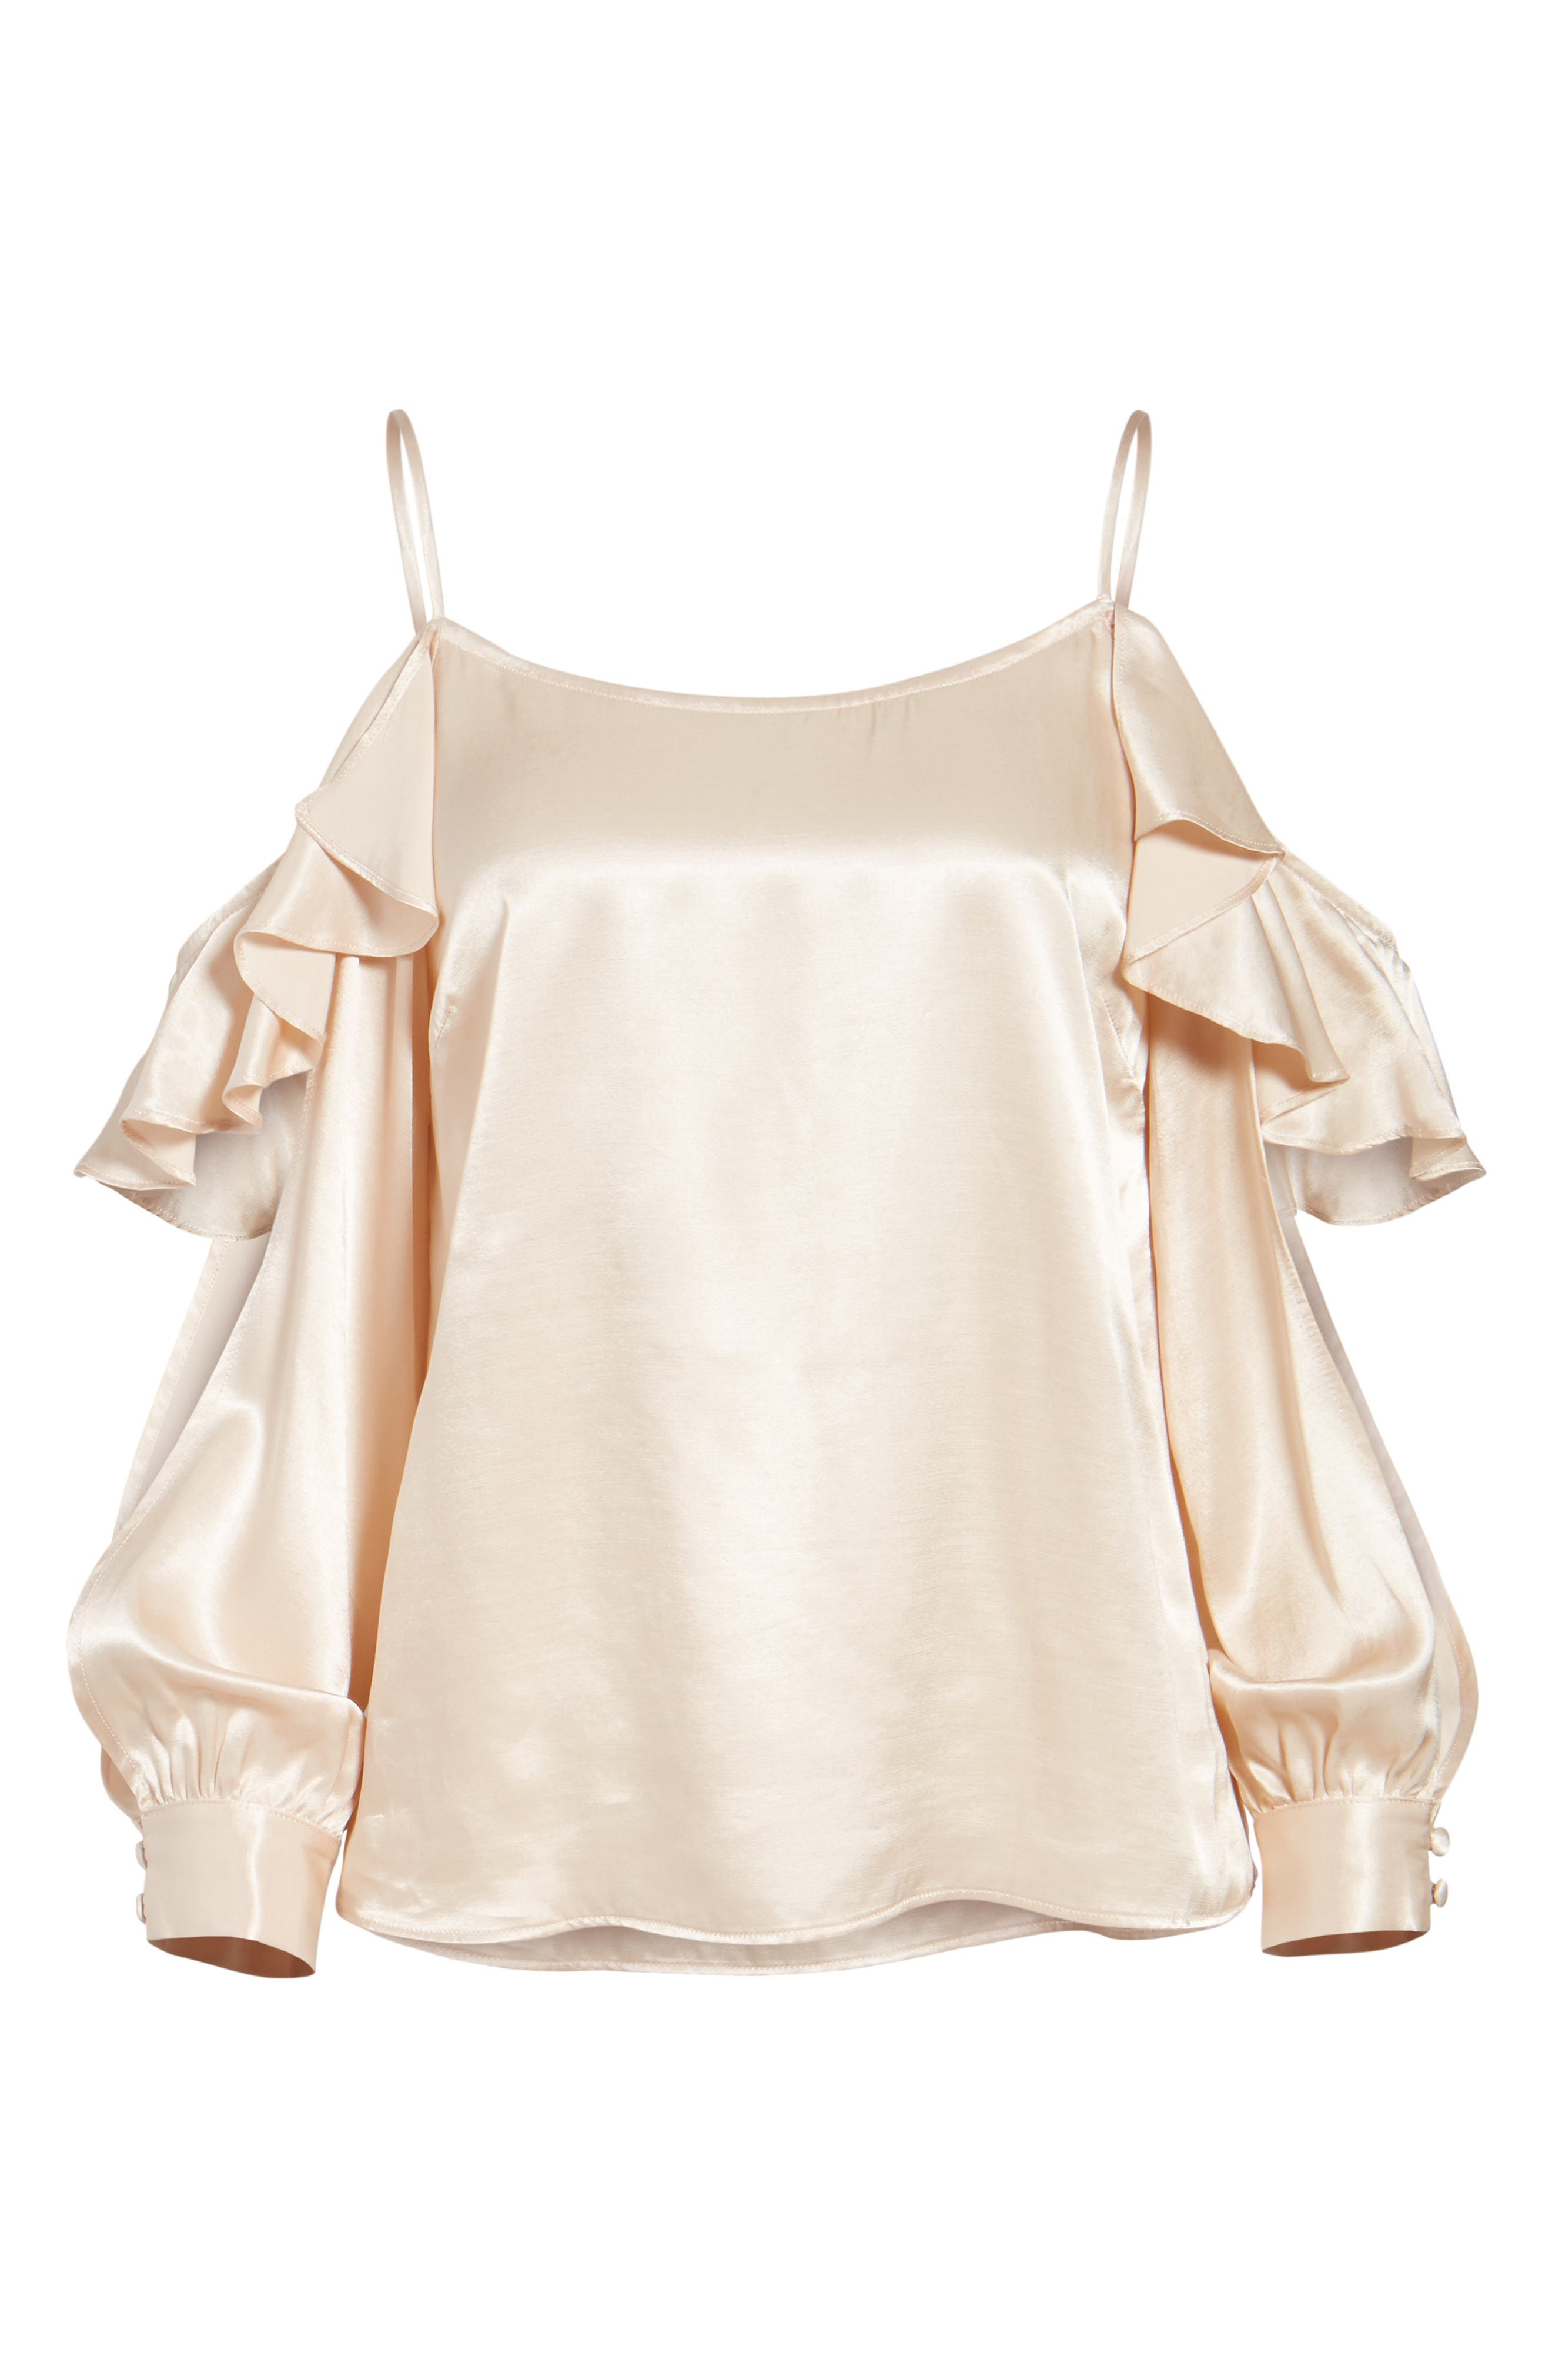 L'Academie The Open Sleeve Blouse,                             Alternate thumbnail 6, color,                             Champagne